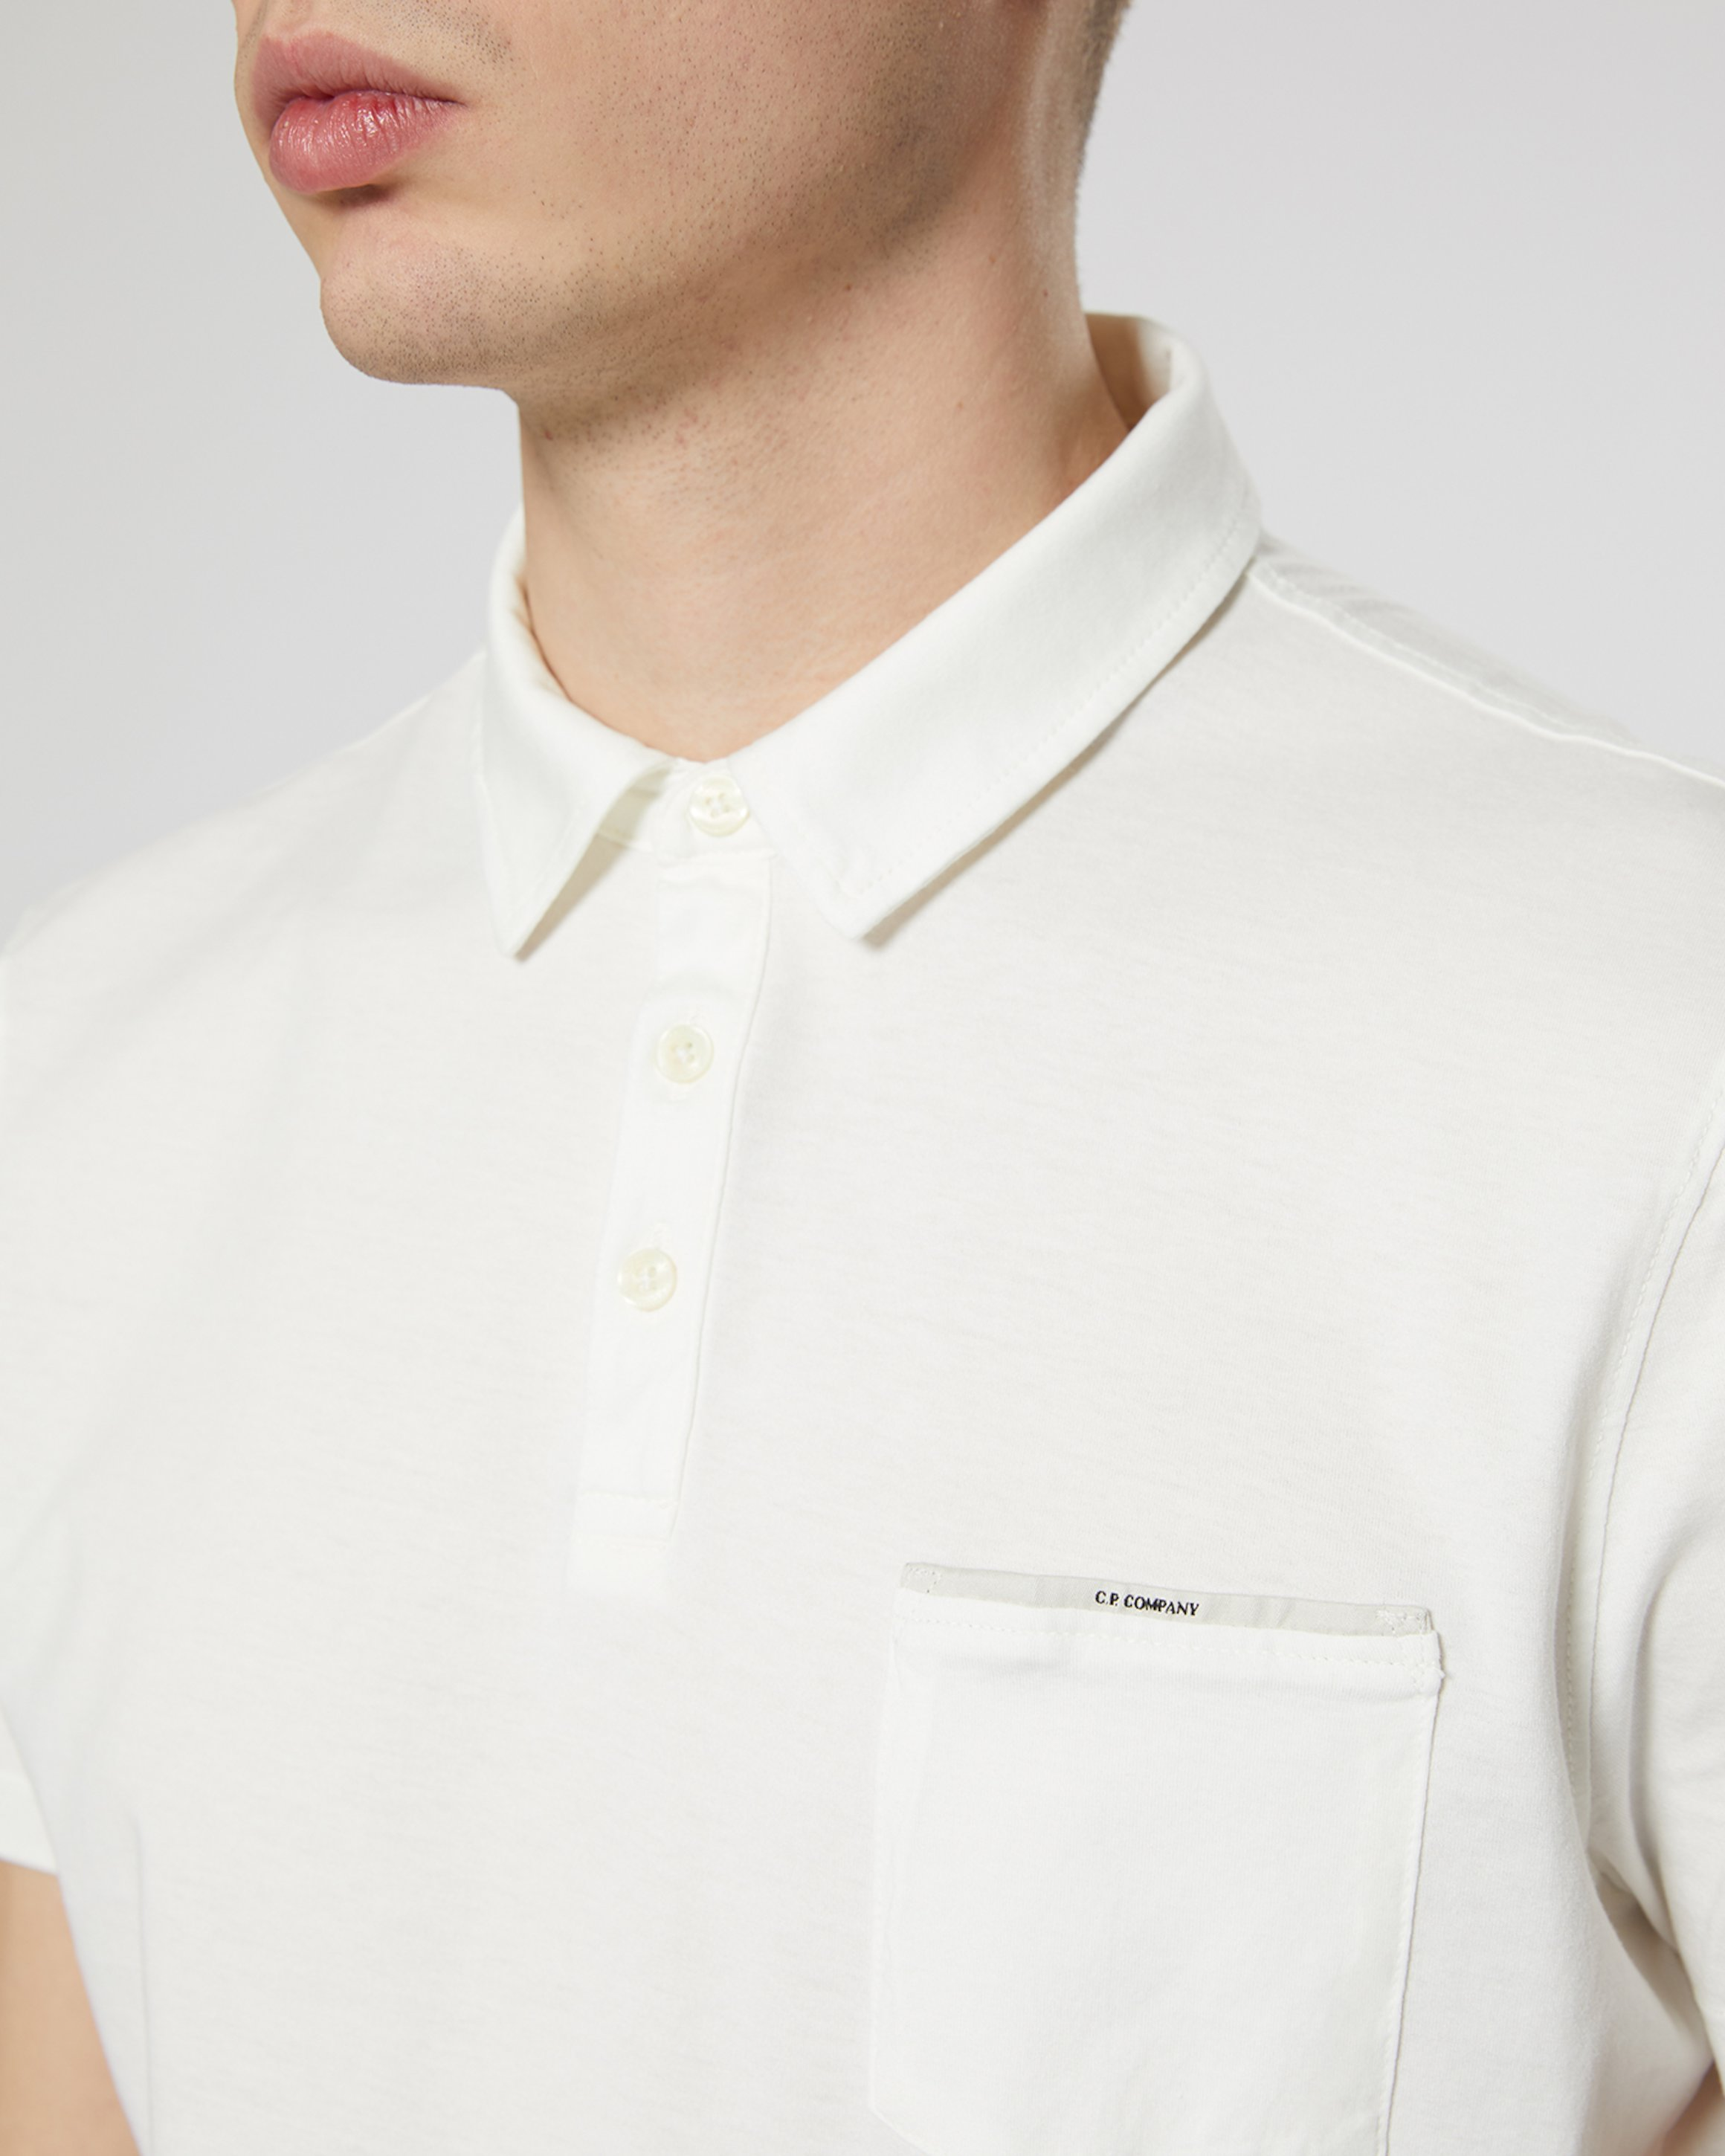 f212cdc7 Garment Dyed Makò Jersey Polo Shirt In White | C.P. Company Online Store